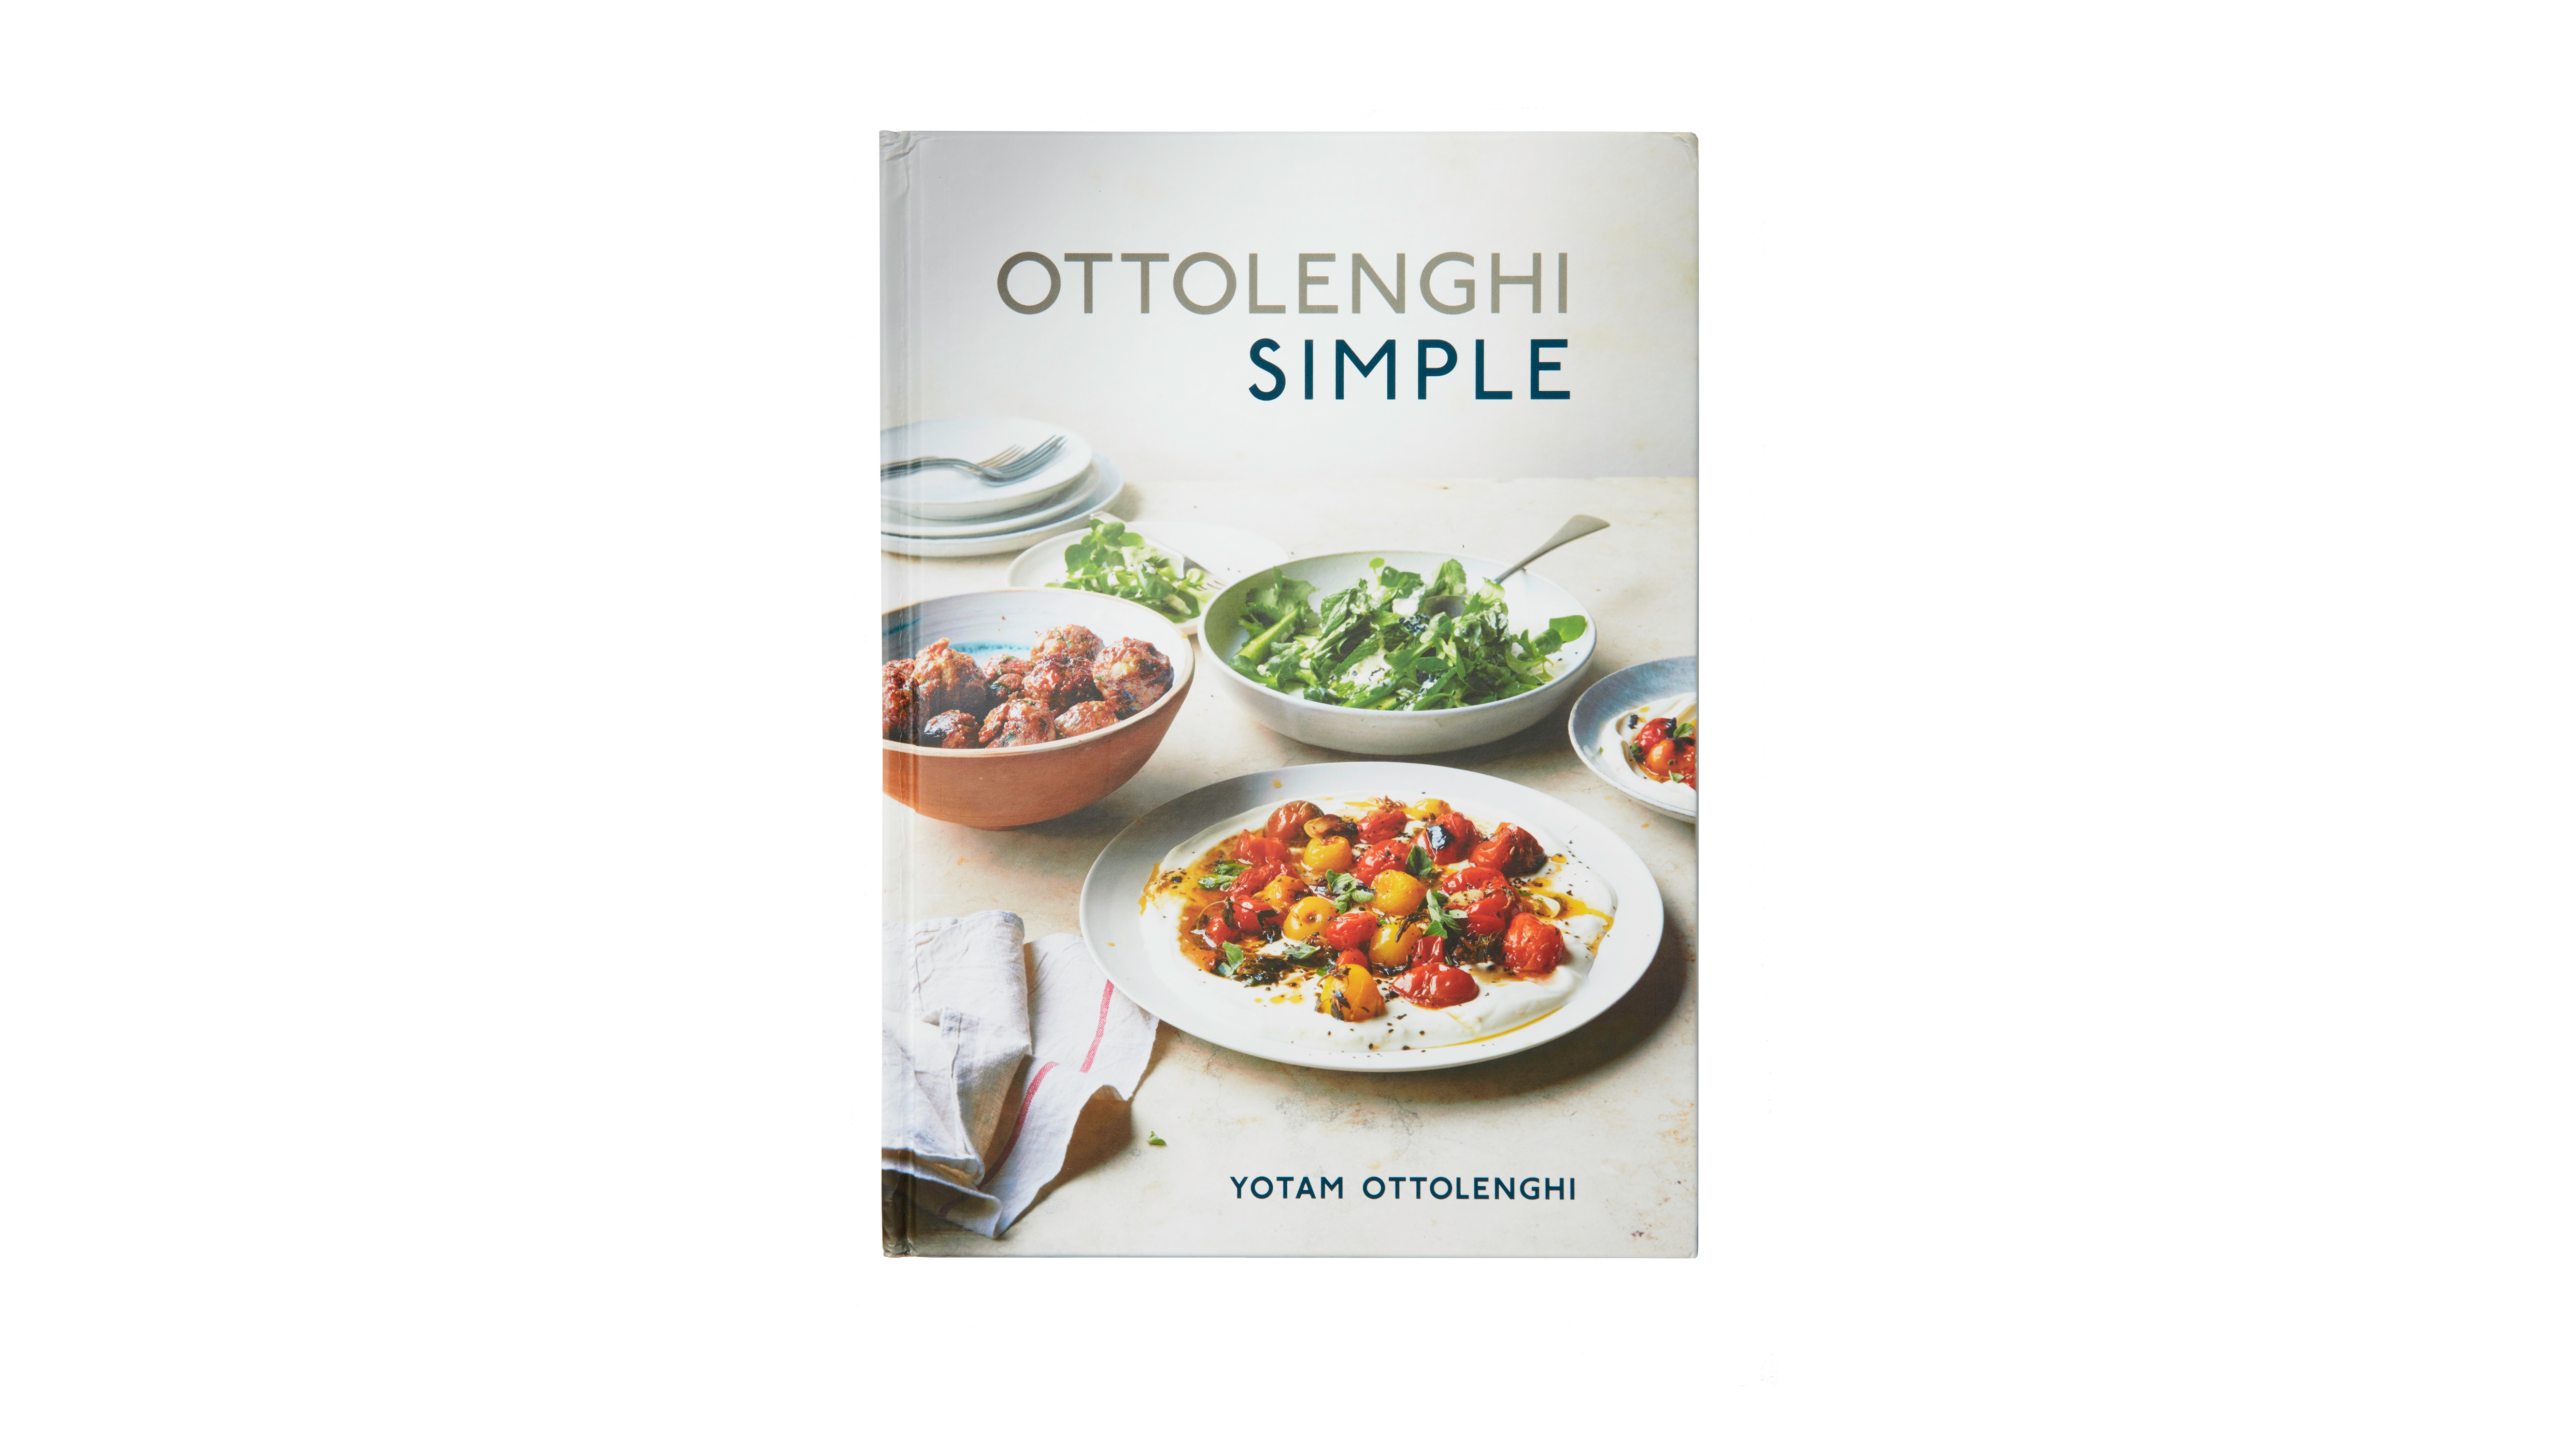 ottolenghi simple cookbook gift